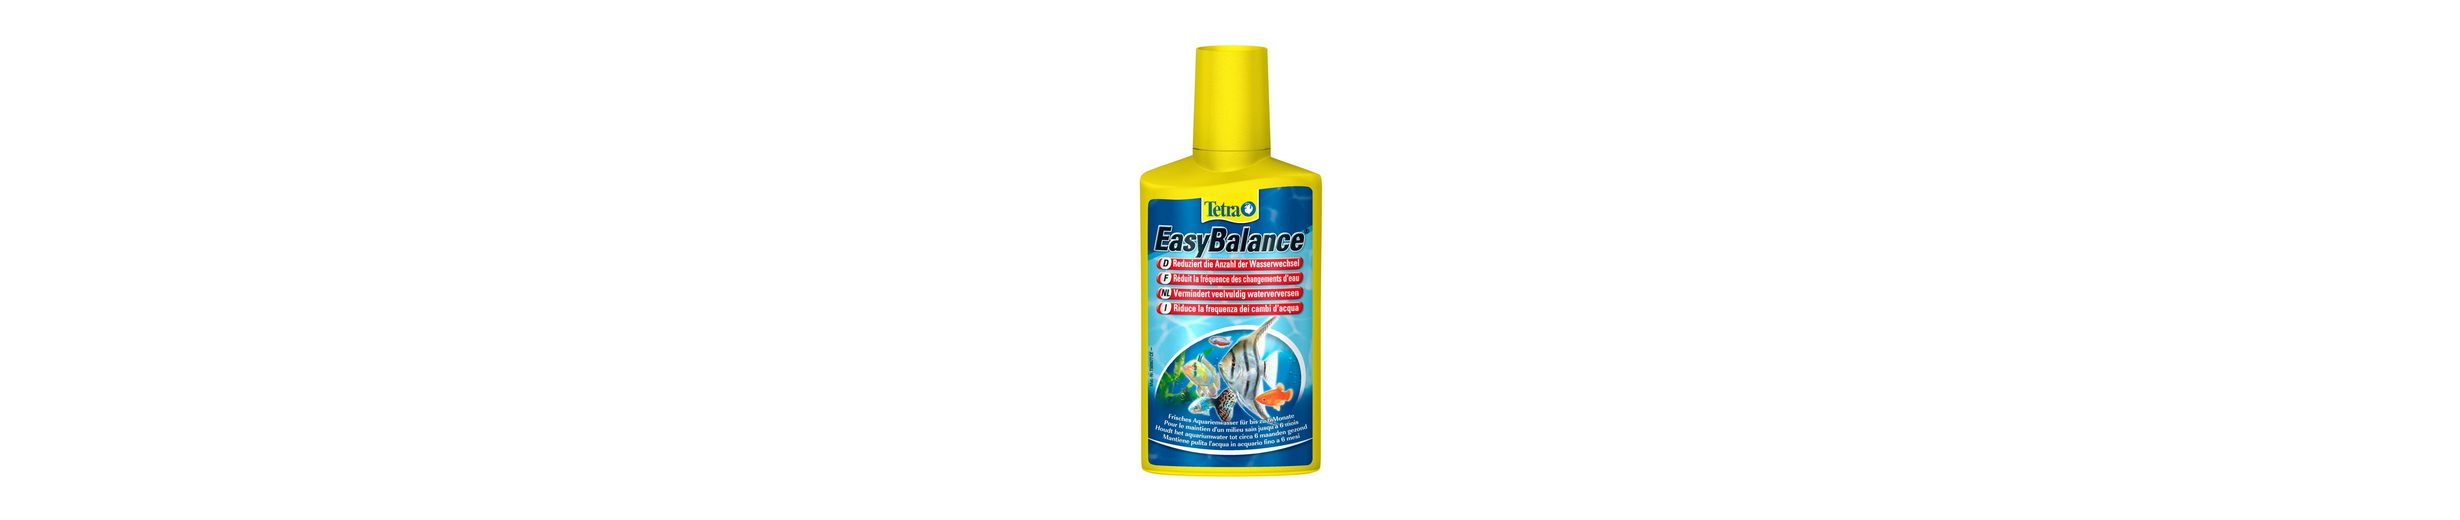 Aquariumpflege »Easy Balance« 2 x 250 ml